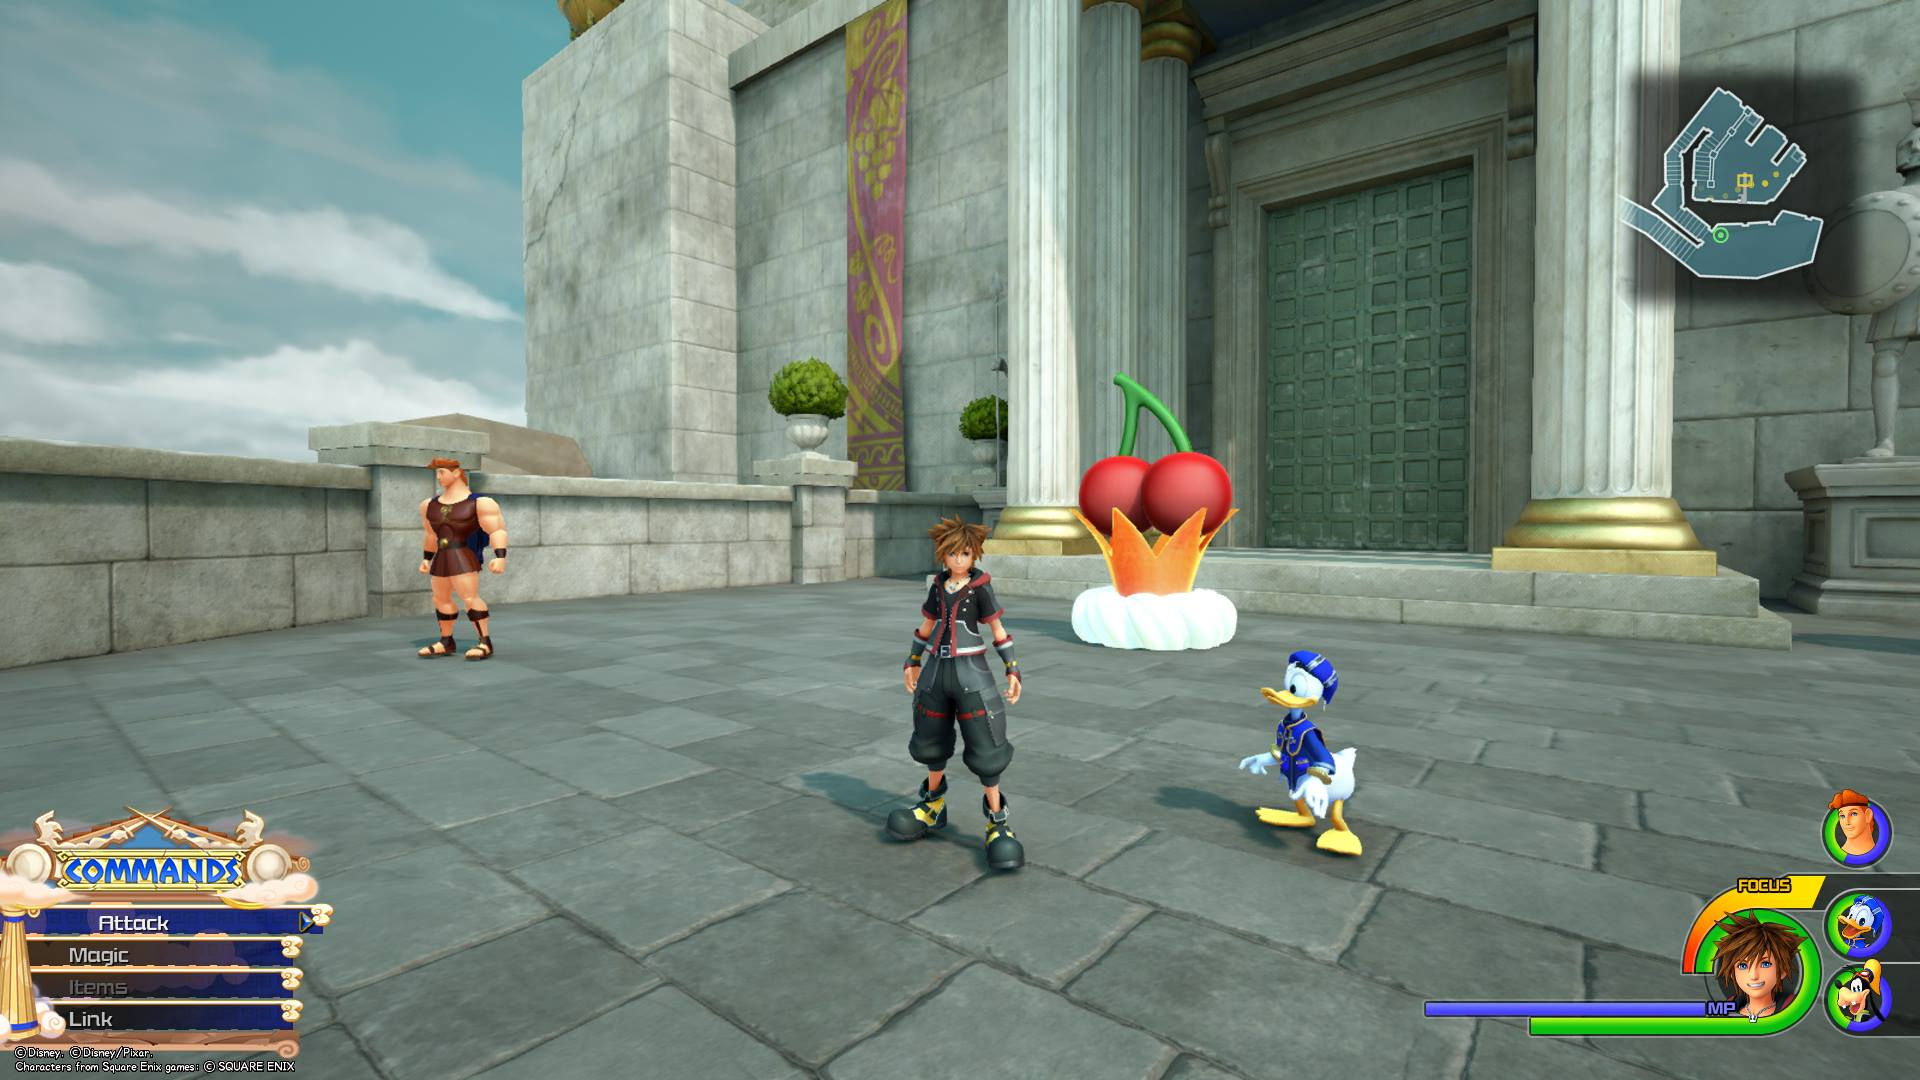 The first Flantastic Seven member can be found in the Overlook area of Thebes in the Olympus world of Kingdom Hearts 3.